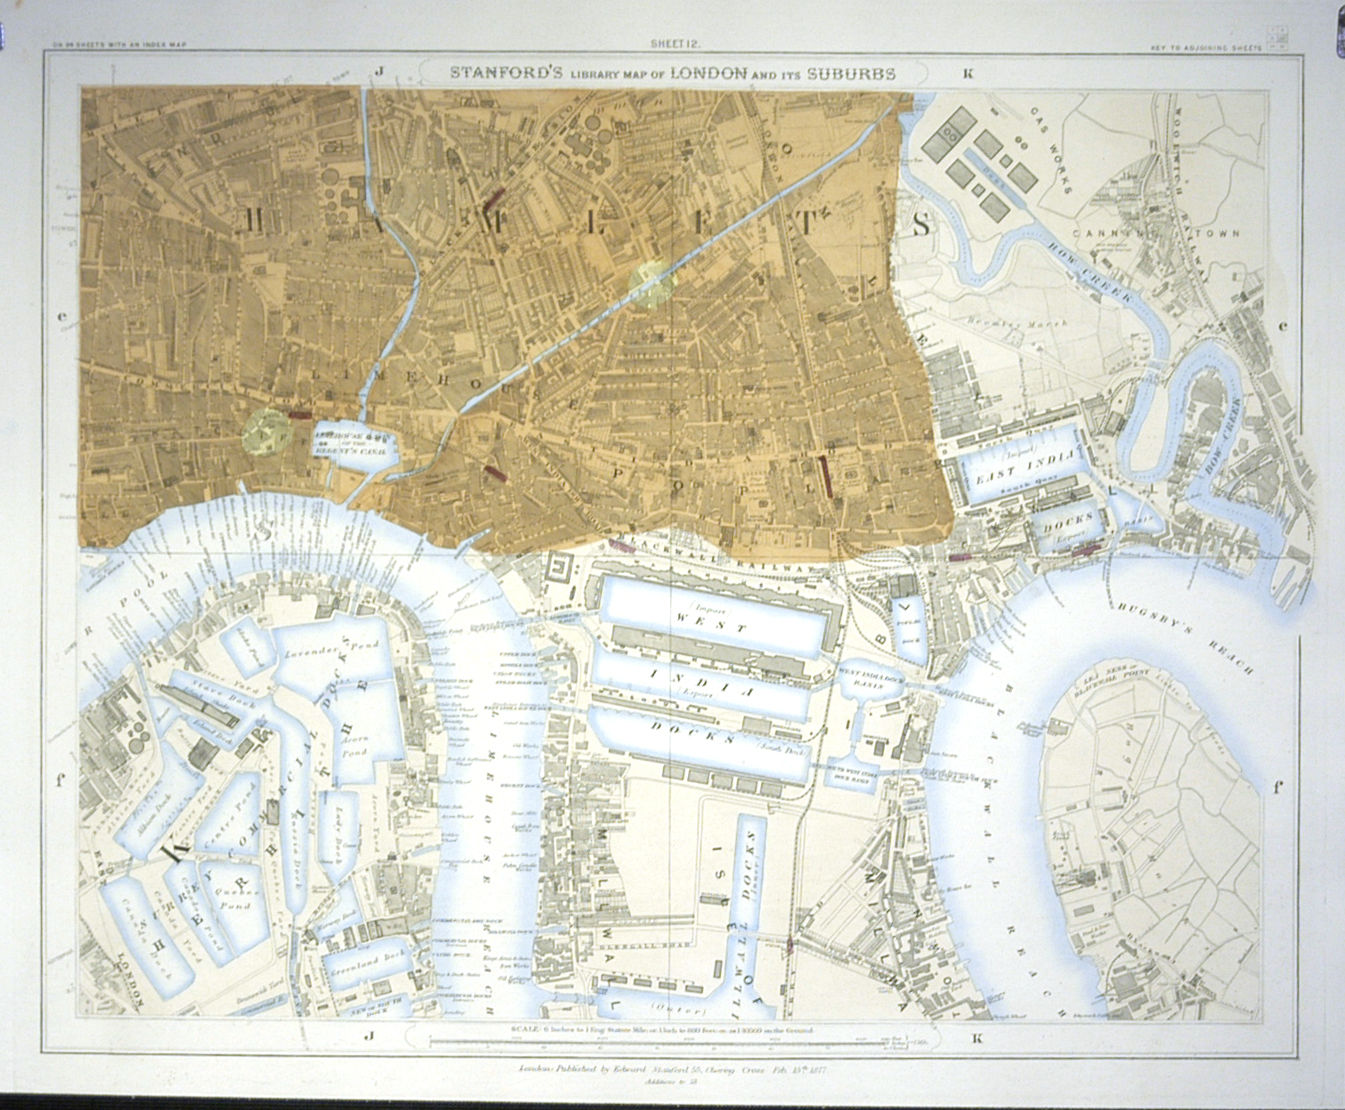 London Map Suburbs.Jonathan Potter Map Stanford S Library Map Of London And Its